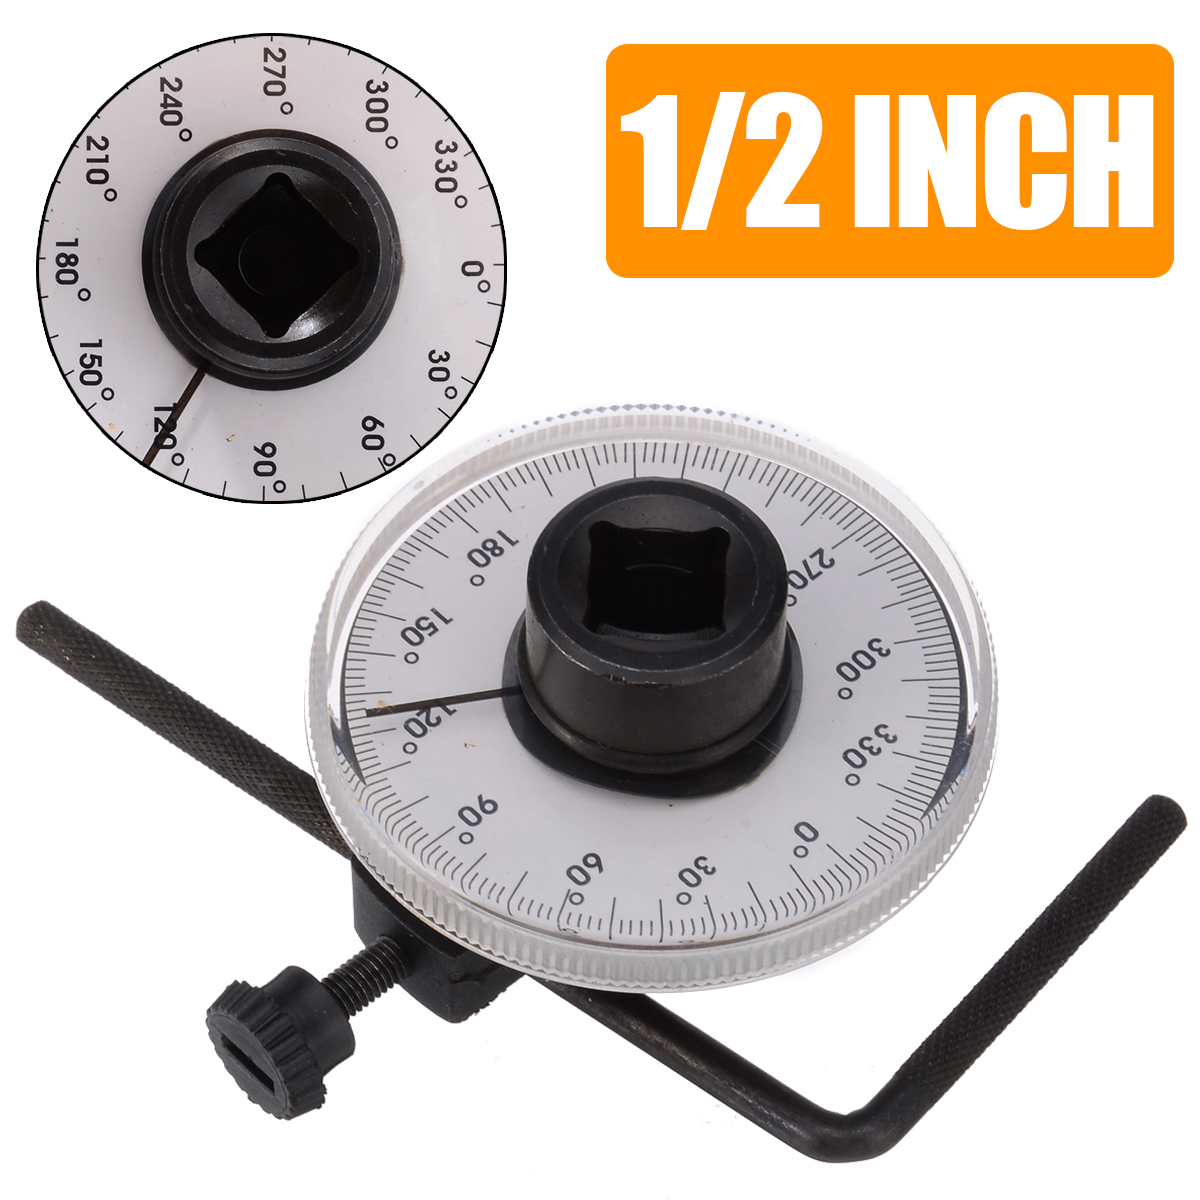 1/2inch Drive Torque Angle Gauge Auto Test Torque Wrench Meter Adjustable For Hand Tools Set Wrench